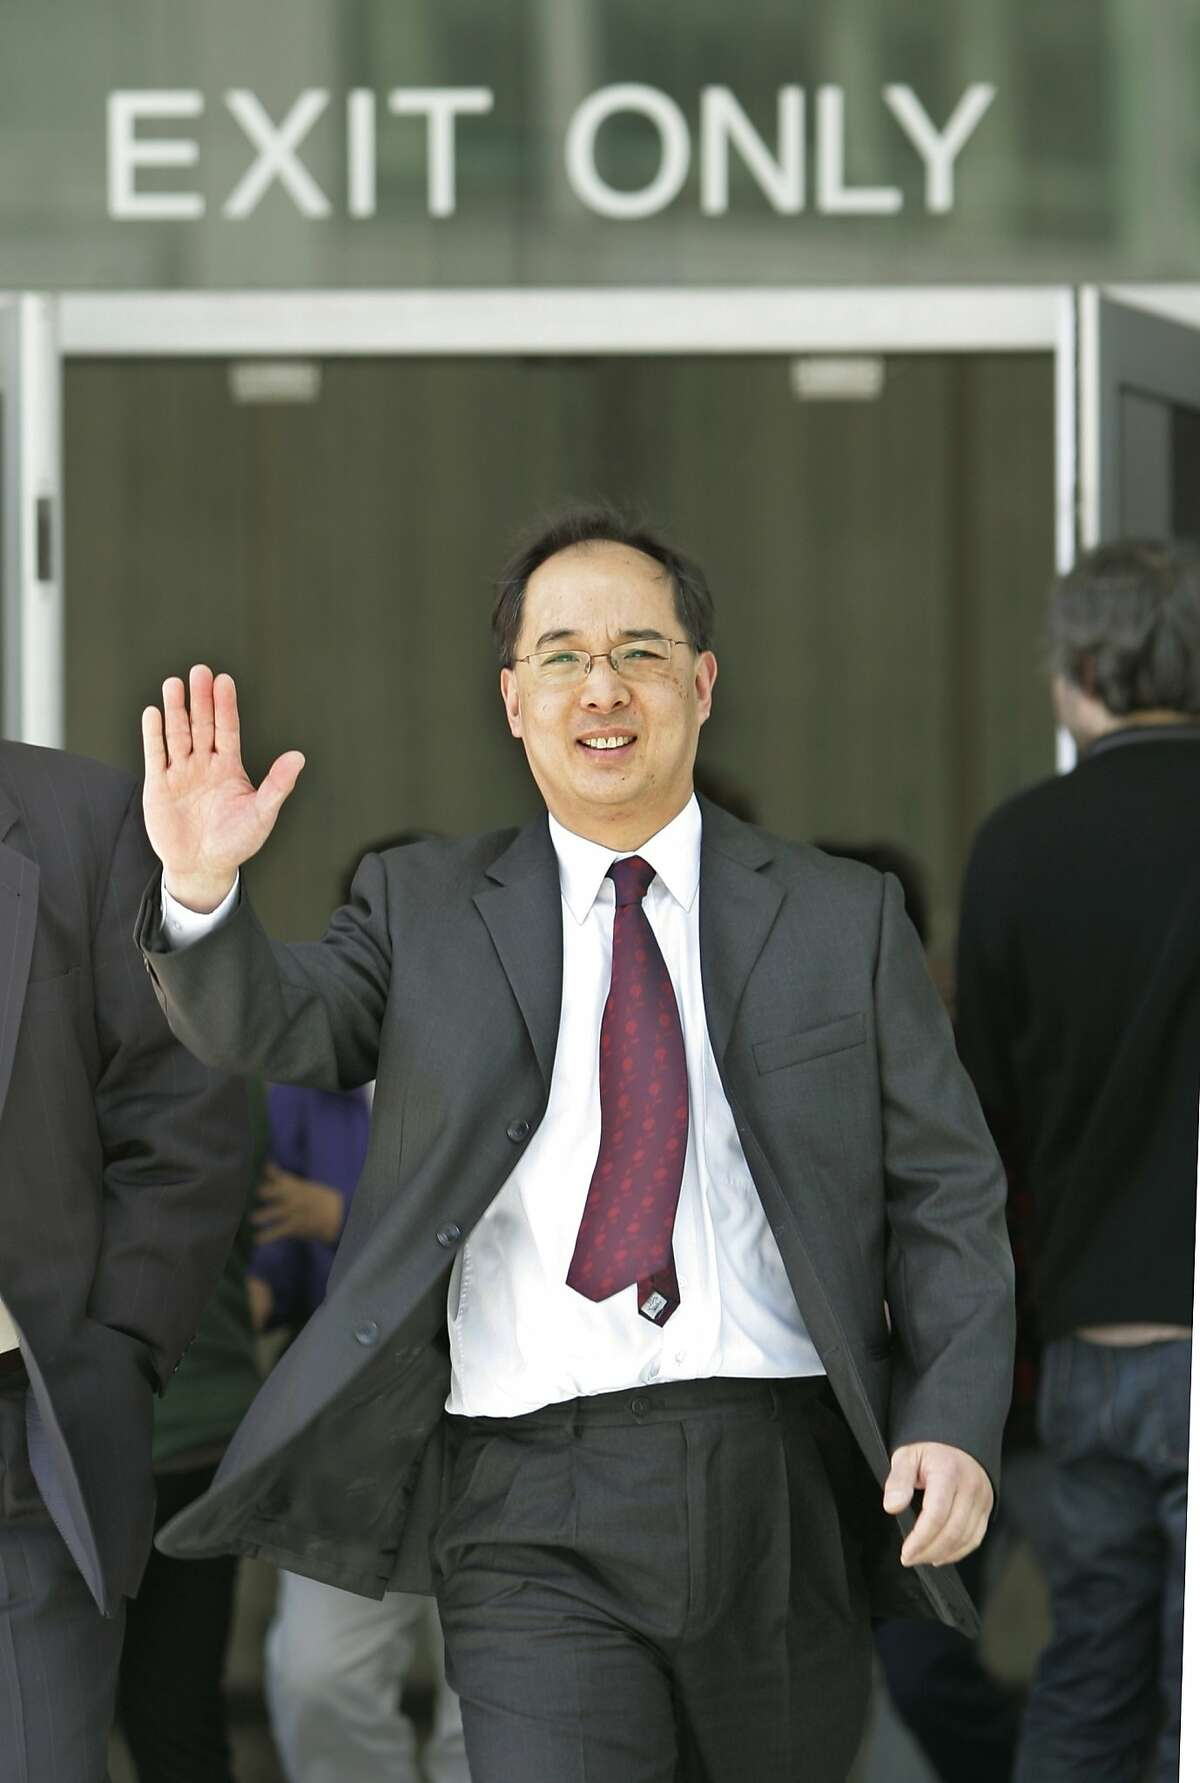 Former San Francisco Supervisor Ed Jew leaves a sentencing hearing at a federal courthouse in San Francisco, Friday, April 3, 2009. Jew has been sentenced to five years and four months in prison for attempting to shake down small city businesses having planning permit problems. He was ensnared in a 2007 FBI sting that videotaped Jew receiving $40,000 in marked bills from an owner of a Quickly fast-food restaurant. He later pleaded guilty to one count each of bribery, extortion and fraud and admitted he tried to force several Quickly owners to pay him a combined $80,000. (AP Photo/Paul Sakuma)